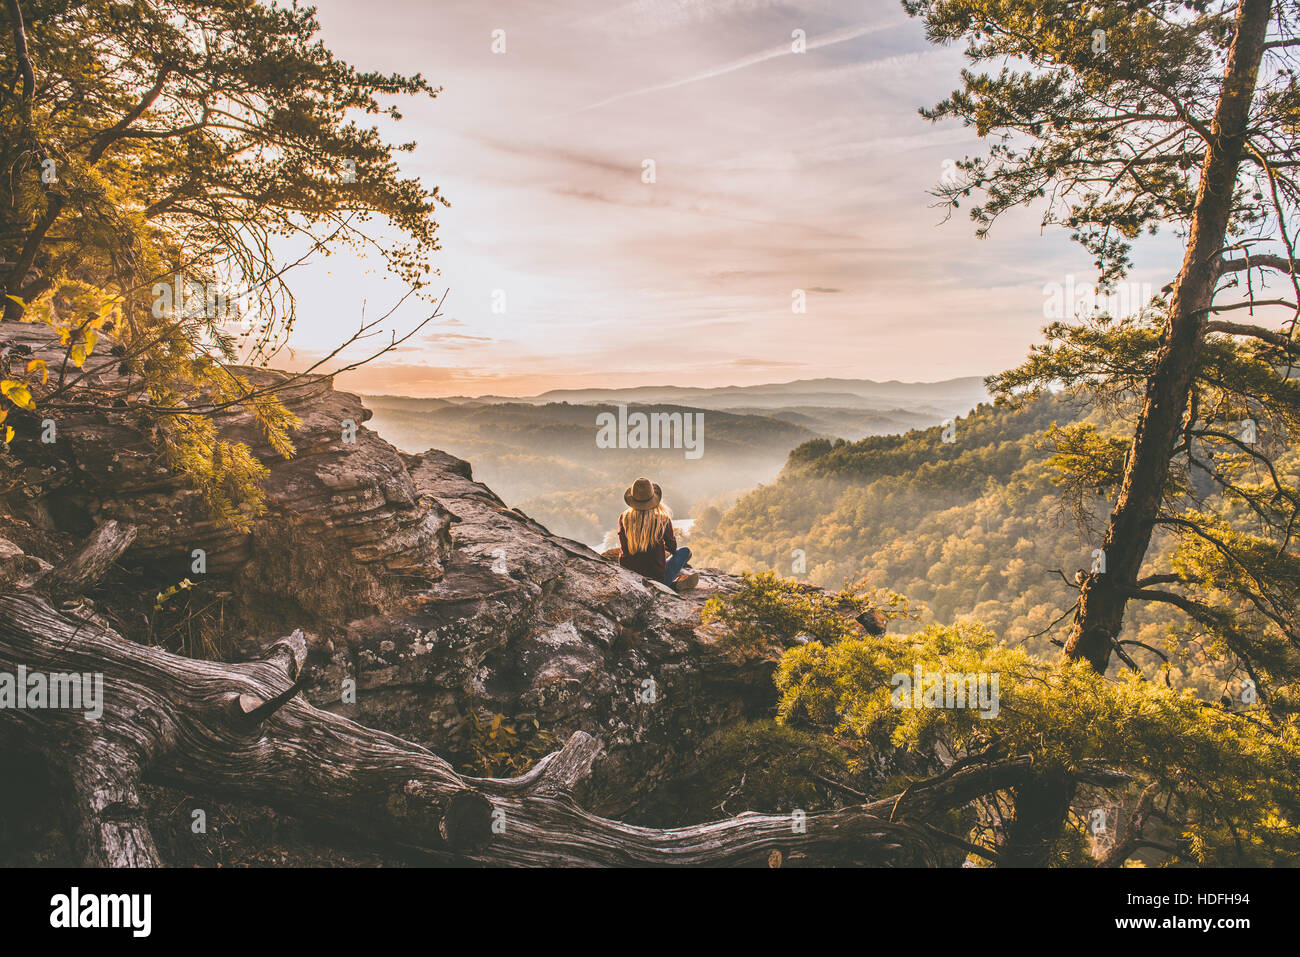 Woman in the wilderness - Stock Image